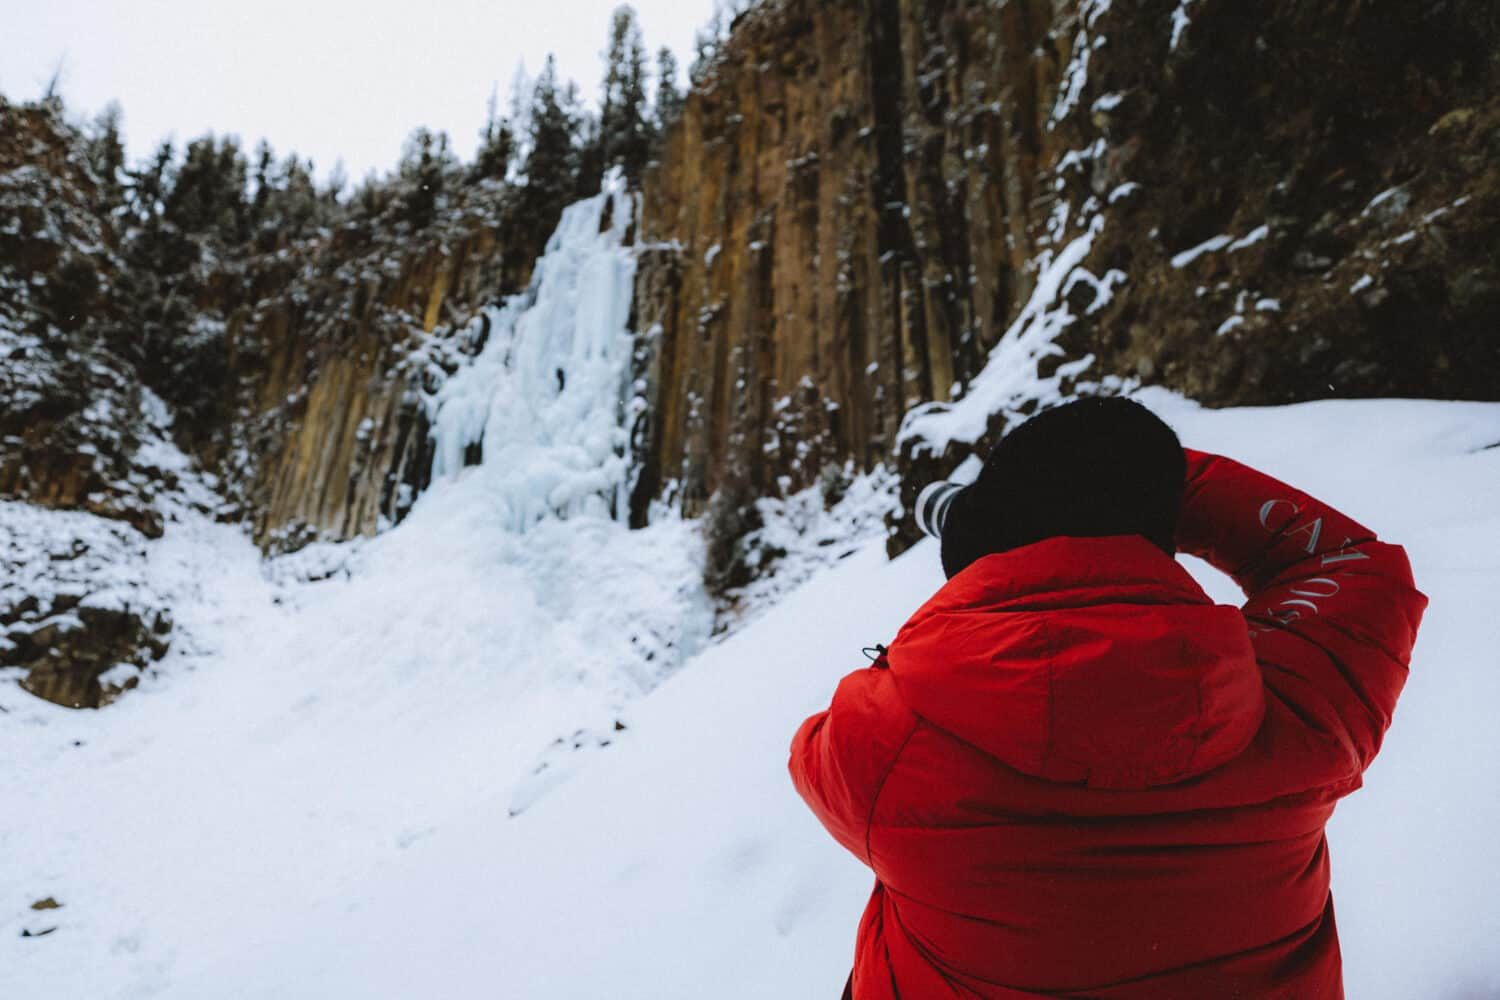 Taking photos at Hyalite Canyon in Bozeman in Winter - Themandagies.com